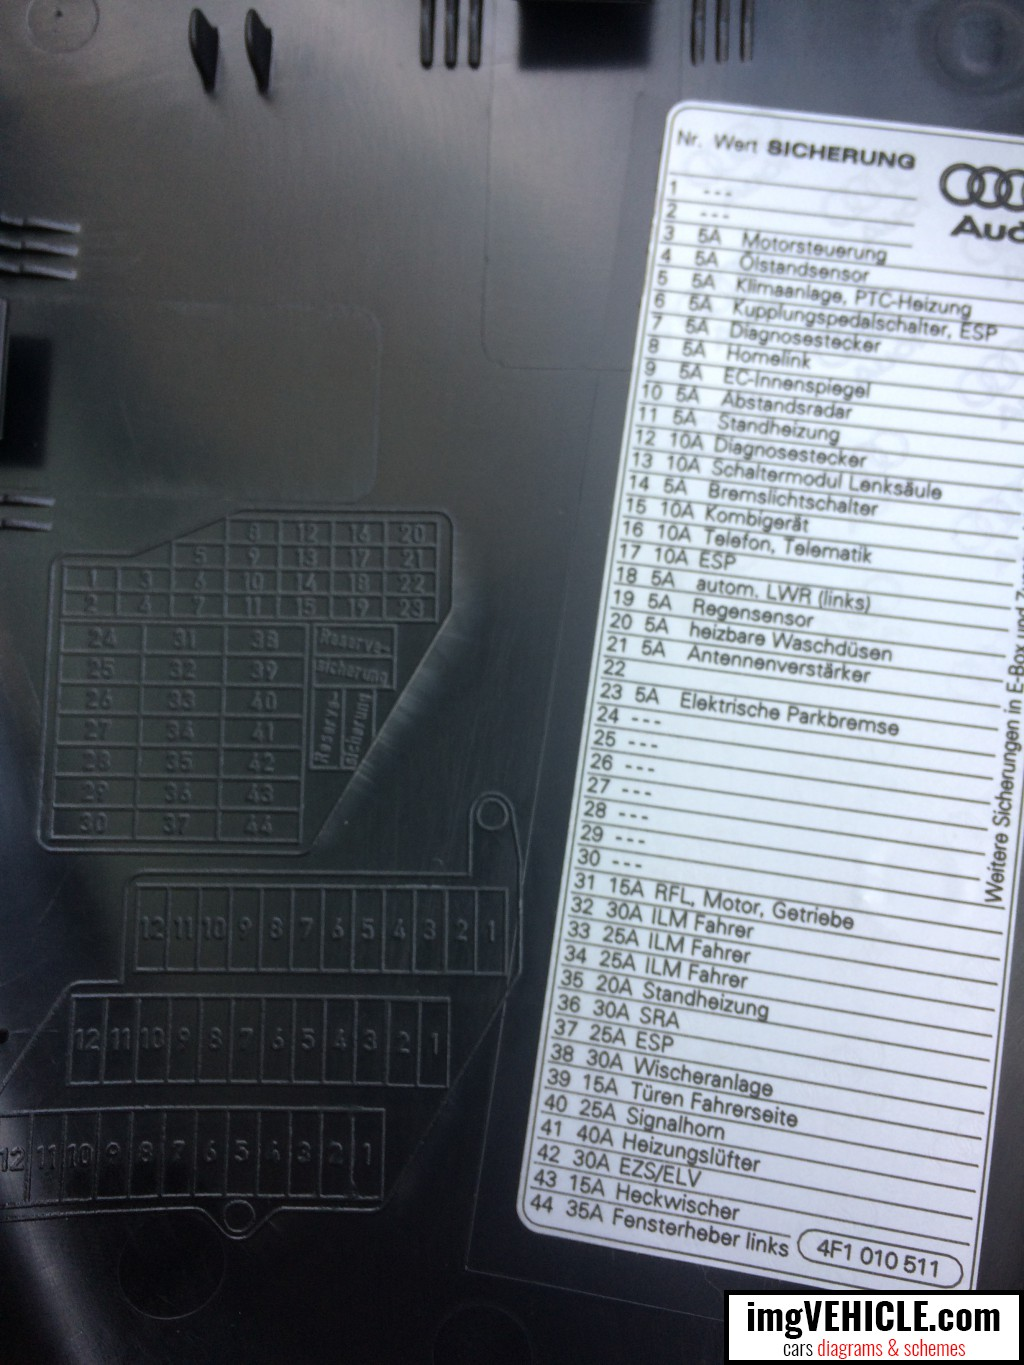 Audi A6 C6 Fuse Box Diagrams Schemes 30 Amp Under Hood Dash Panel Diagram